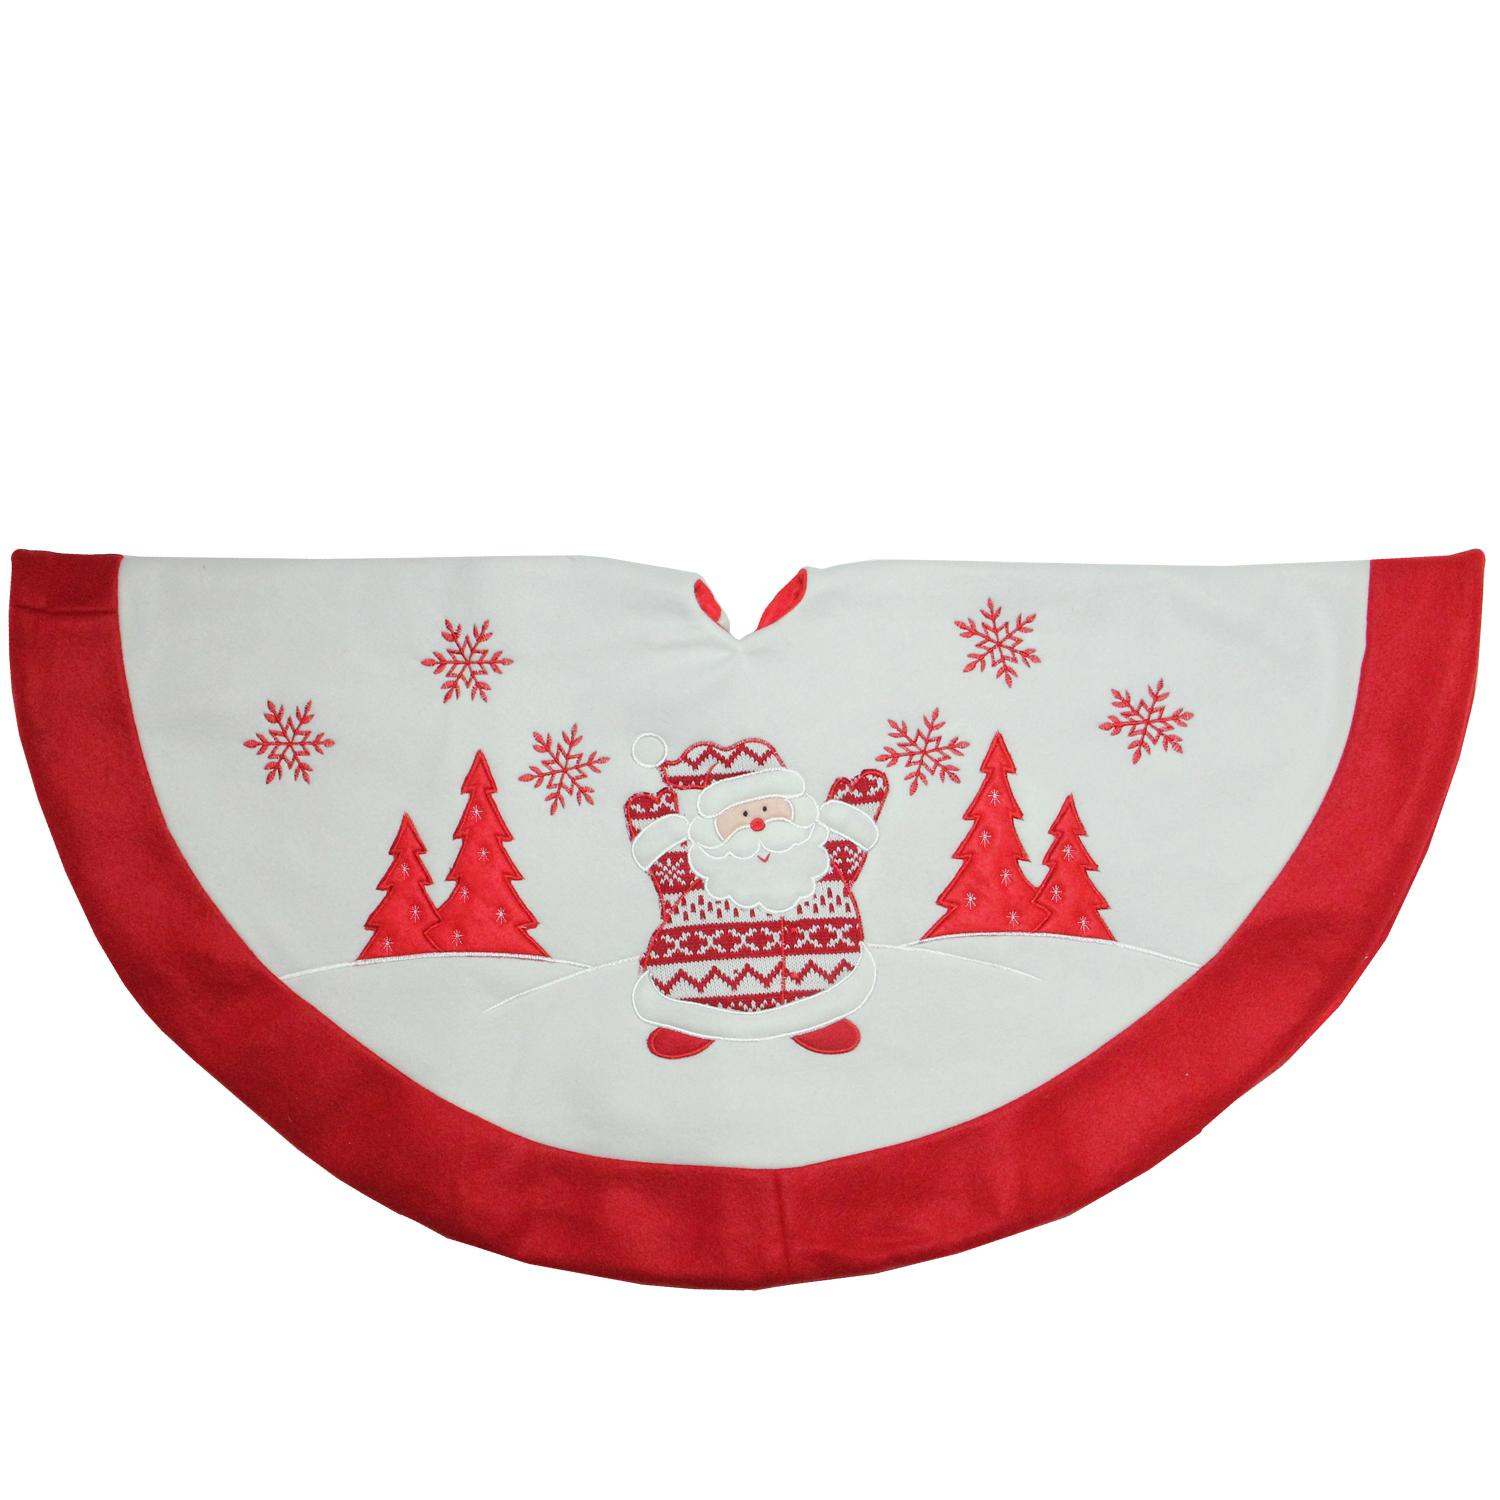 ''36'''' Red and White Knit Santa Claus Embroidered Christmas Tree Skirt''